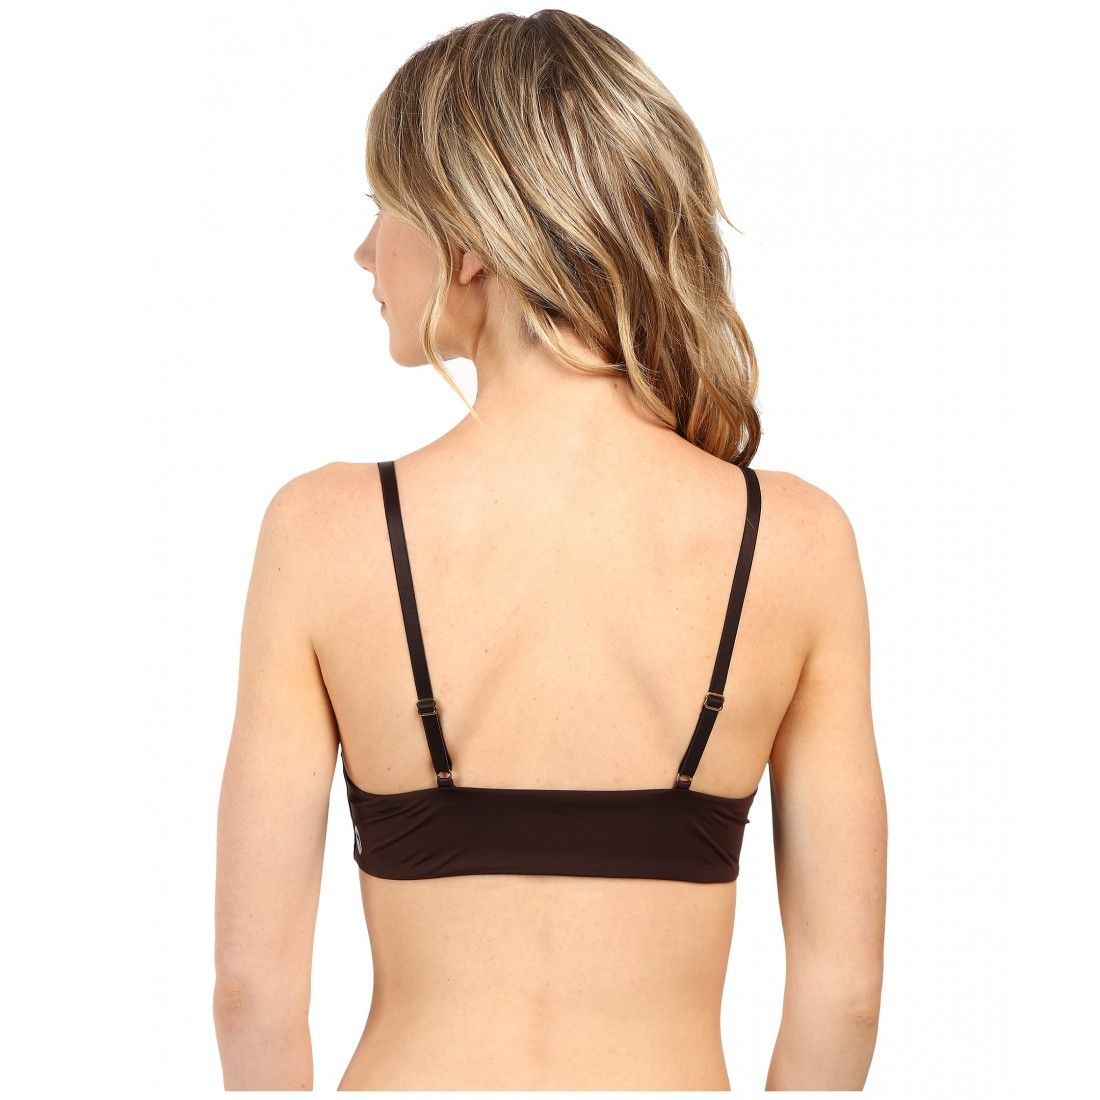 1eadd14b6e Natori Ultimate Comfort Over The Head Unlined Underwire ZPSKU 8798786  Ooloong